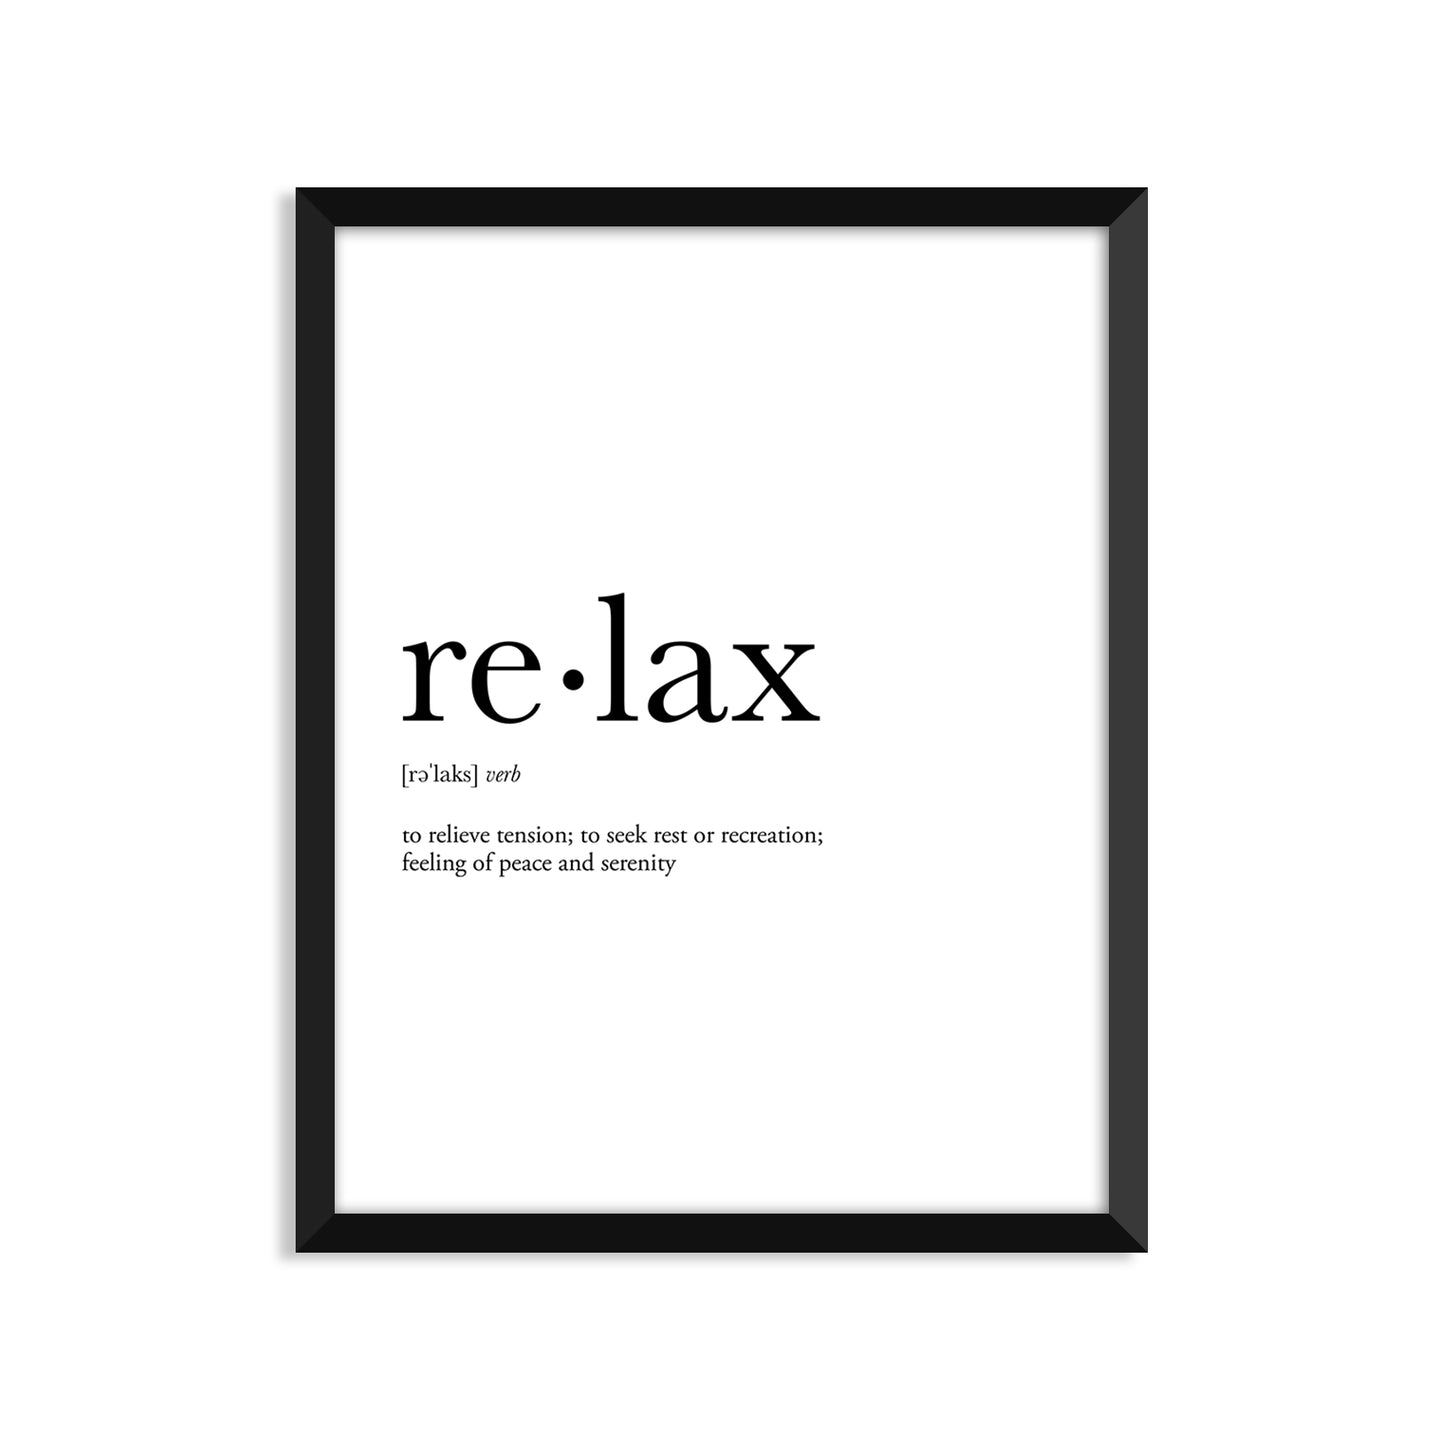 Relax Definition - Unframed Art Print Or Greeting Card